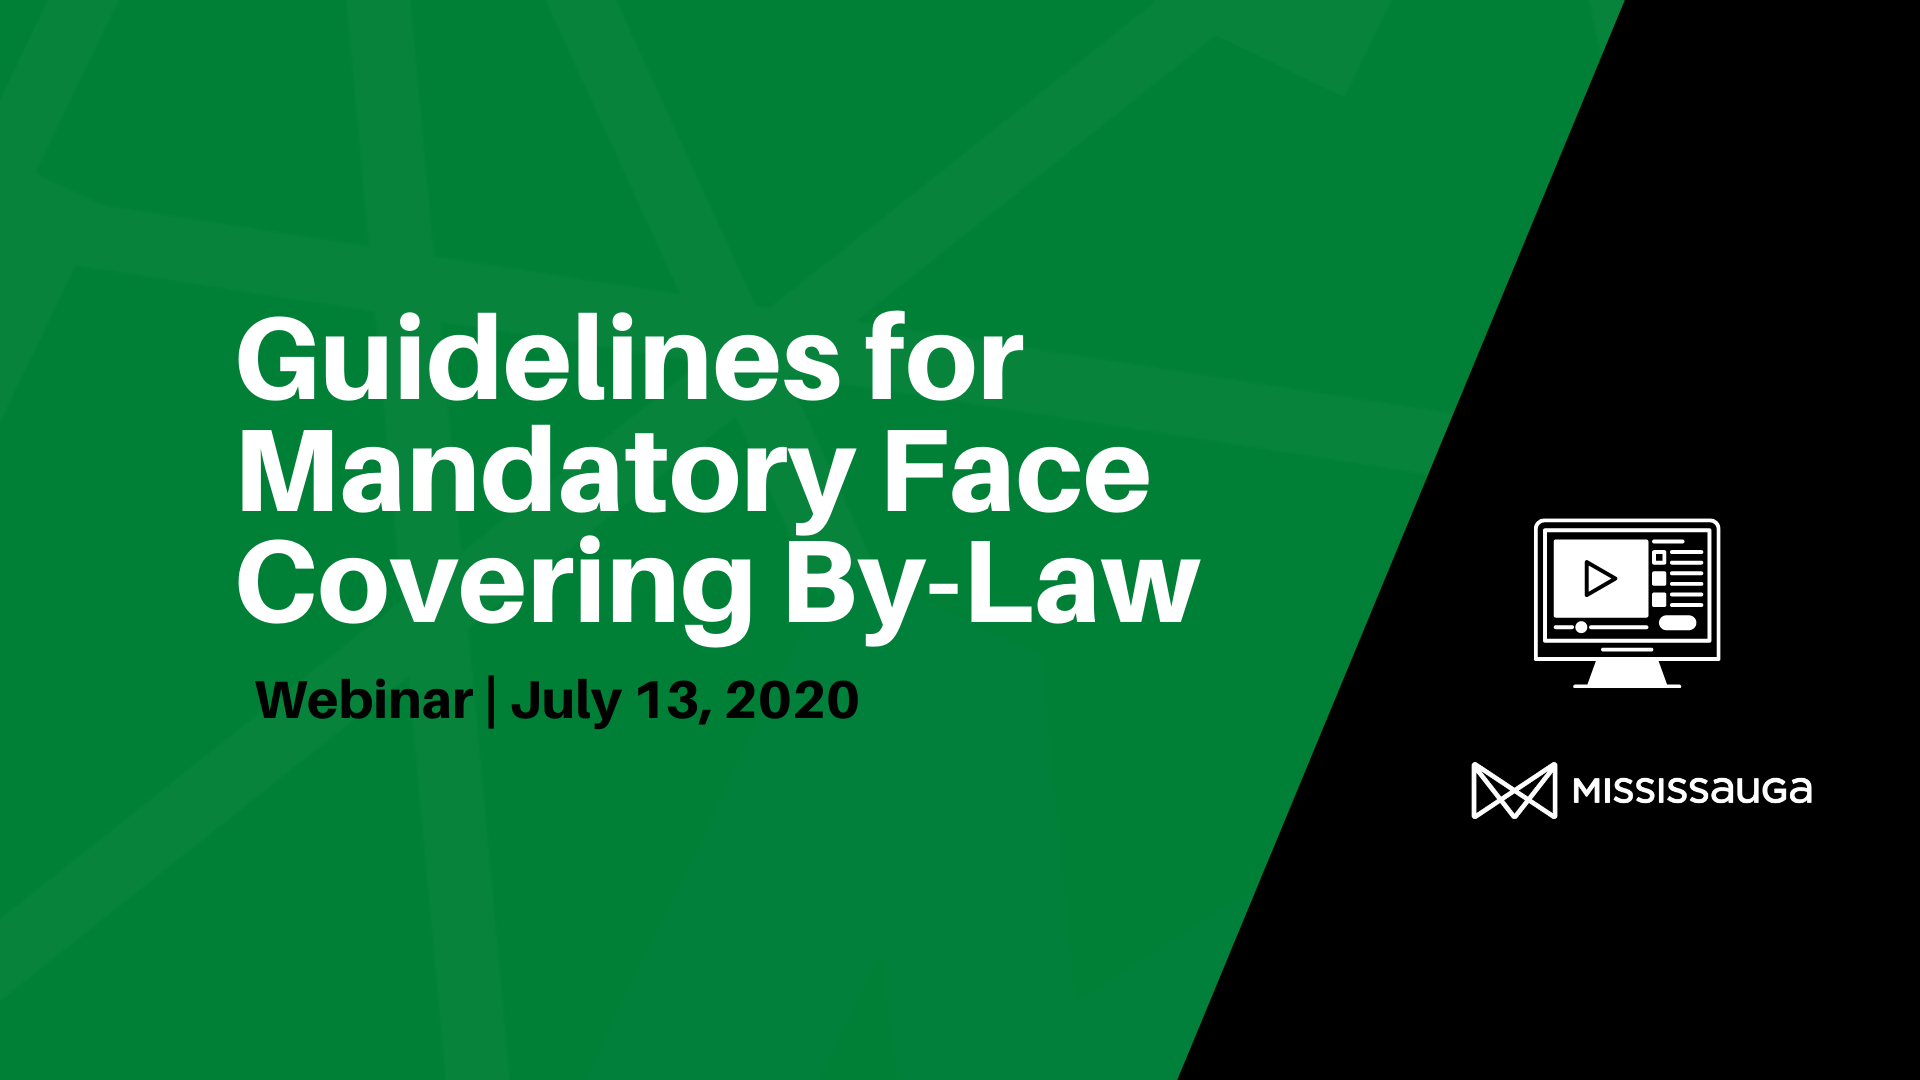 Guidelines for Mandatory Face Covering By-Law – Webinar, Jul 13